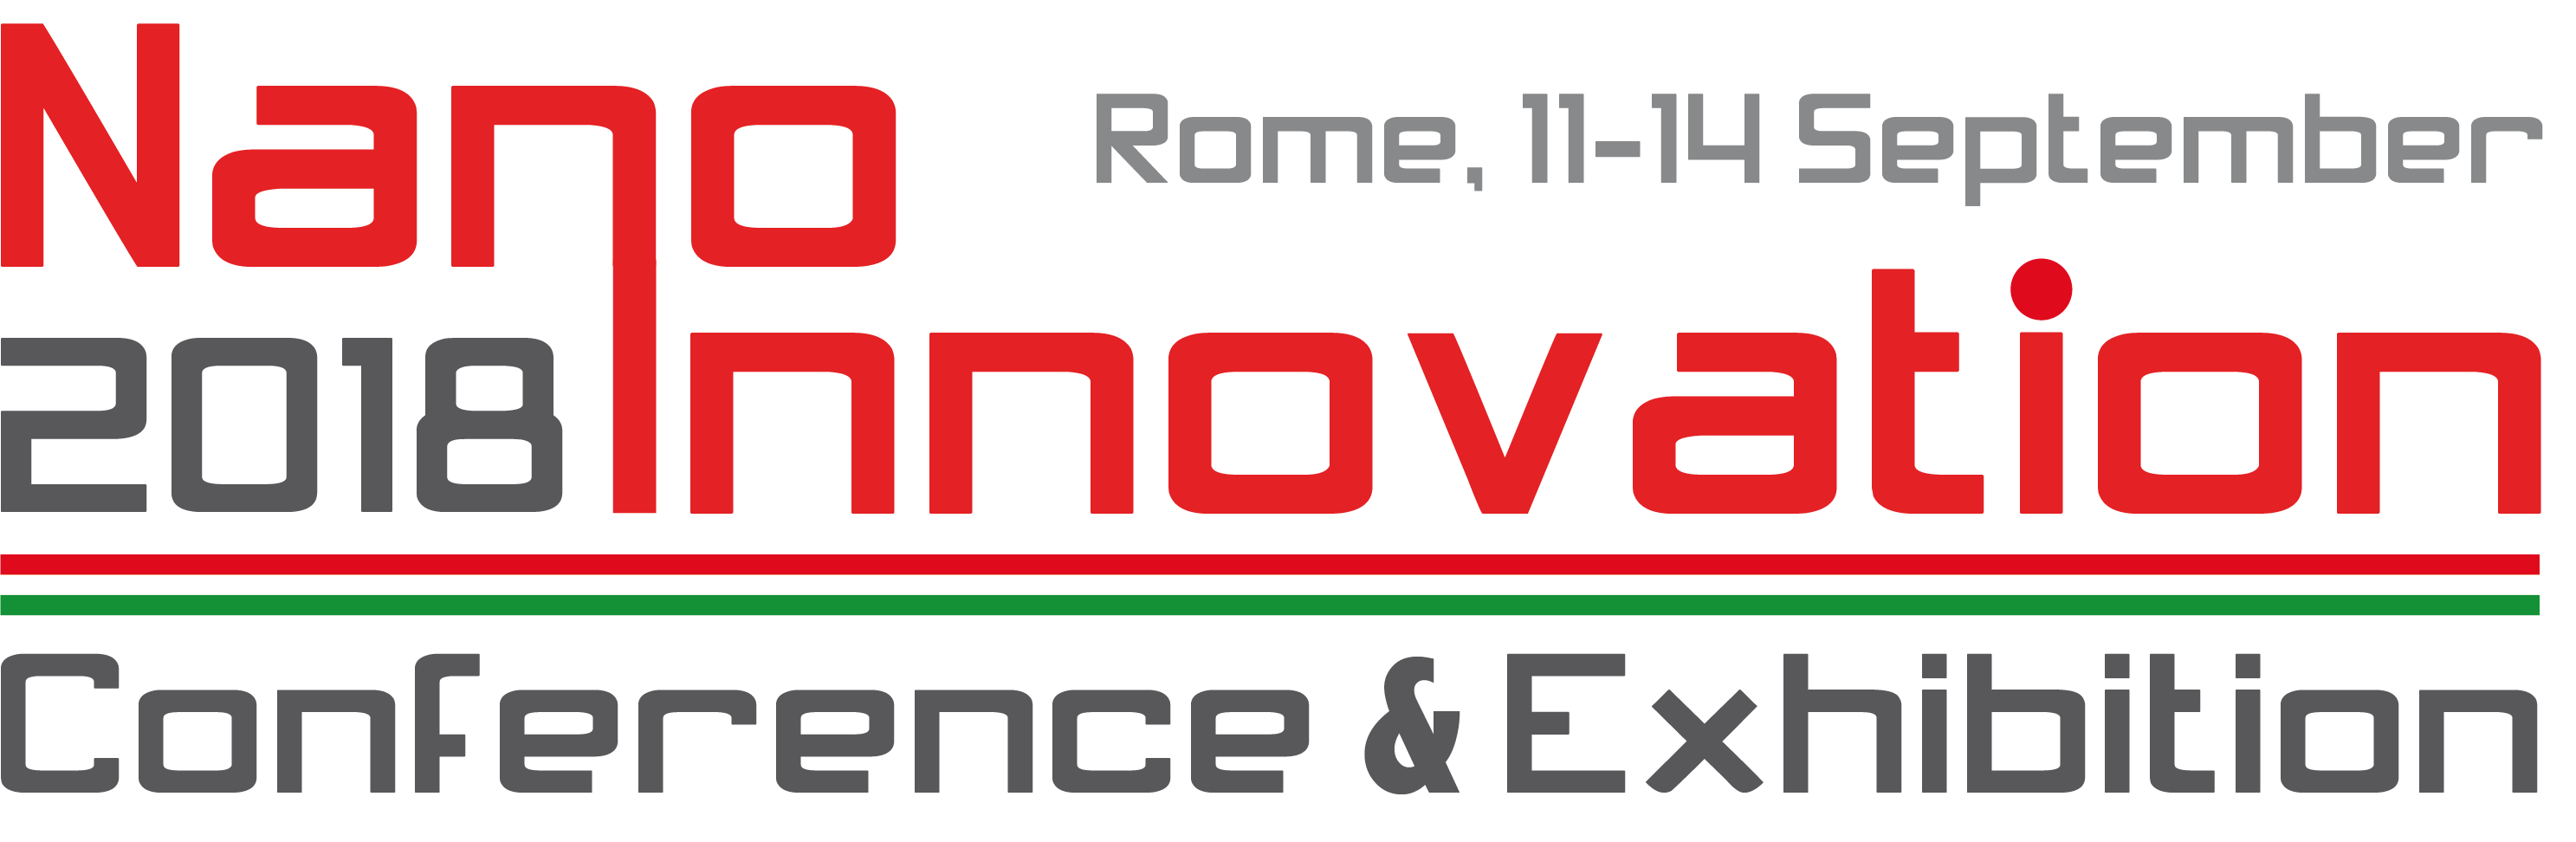 NanoInnovation logo 2018